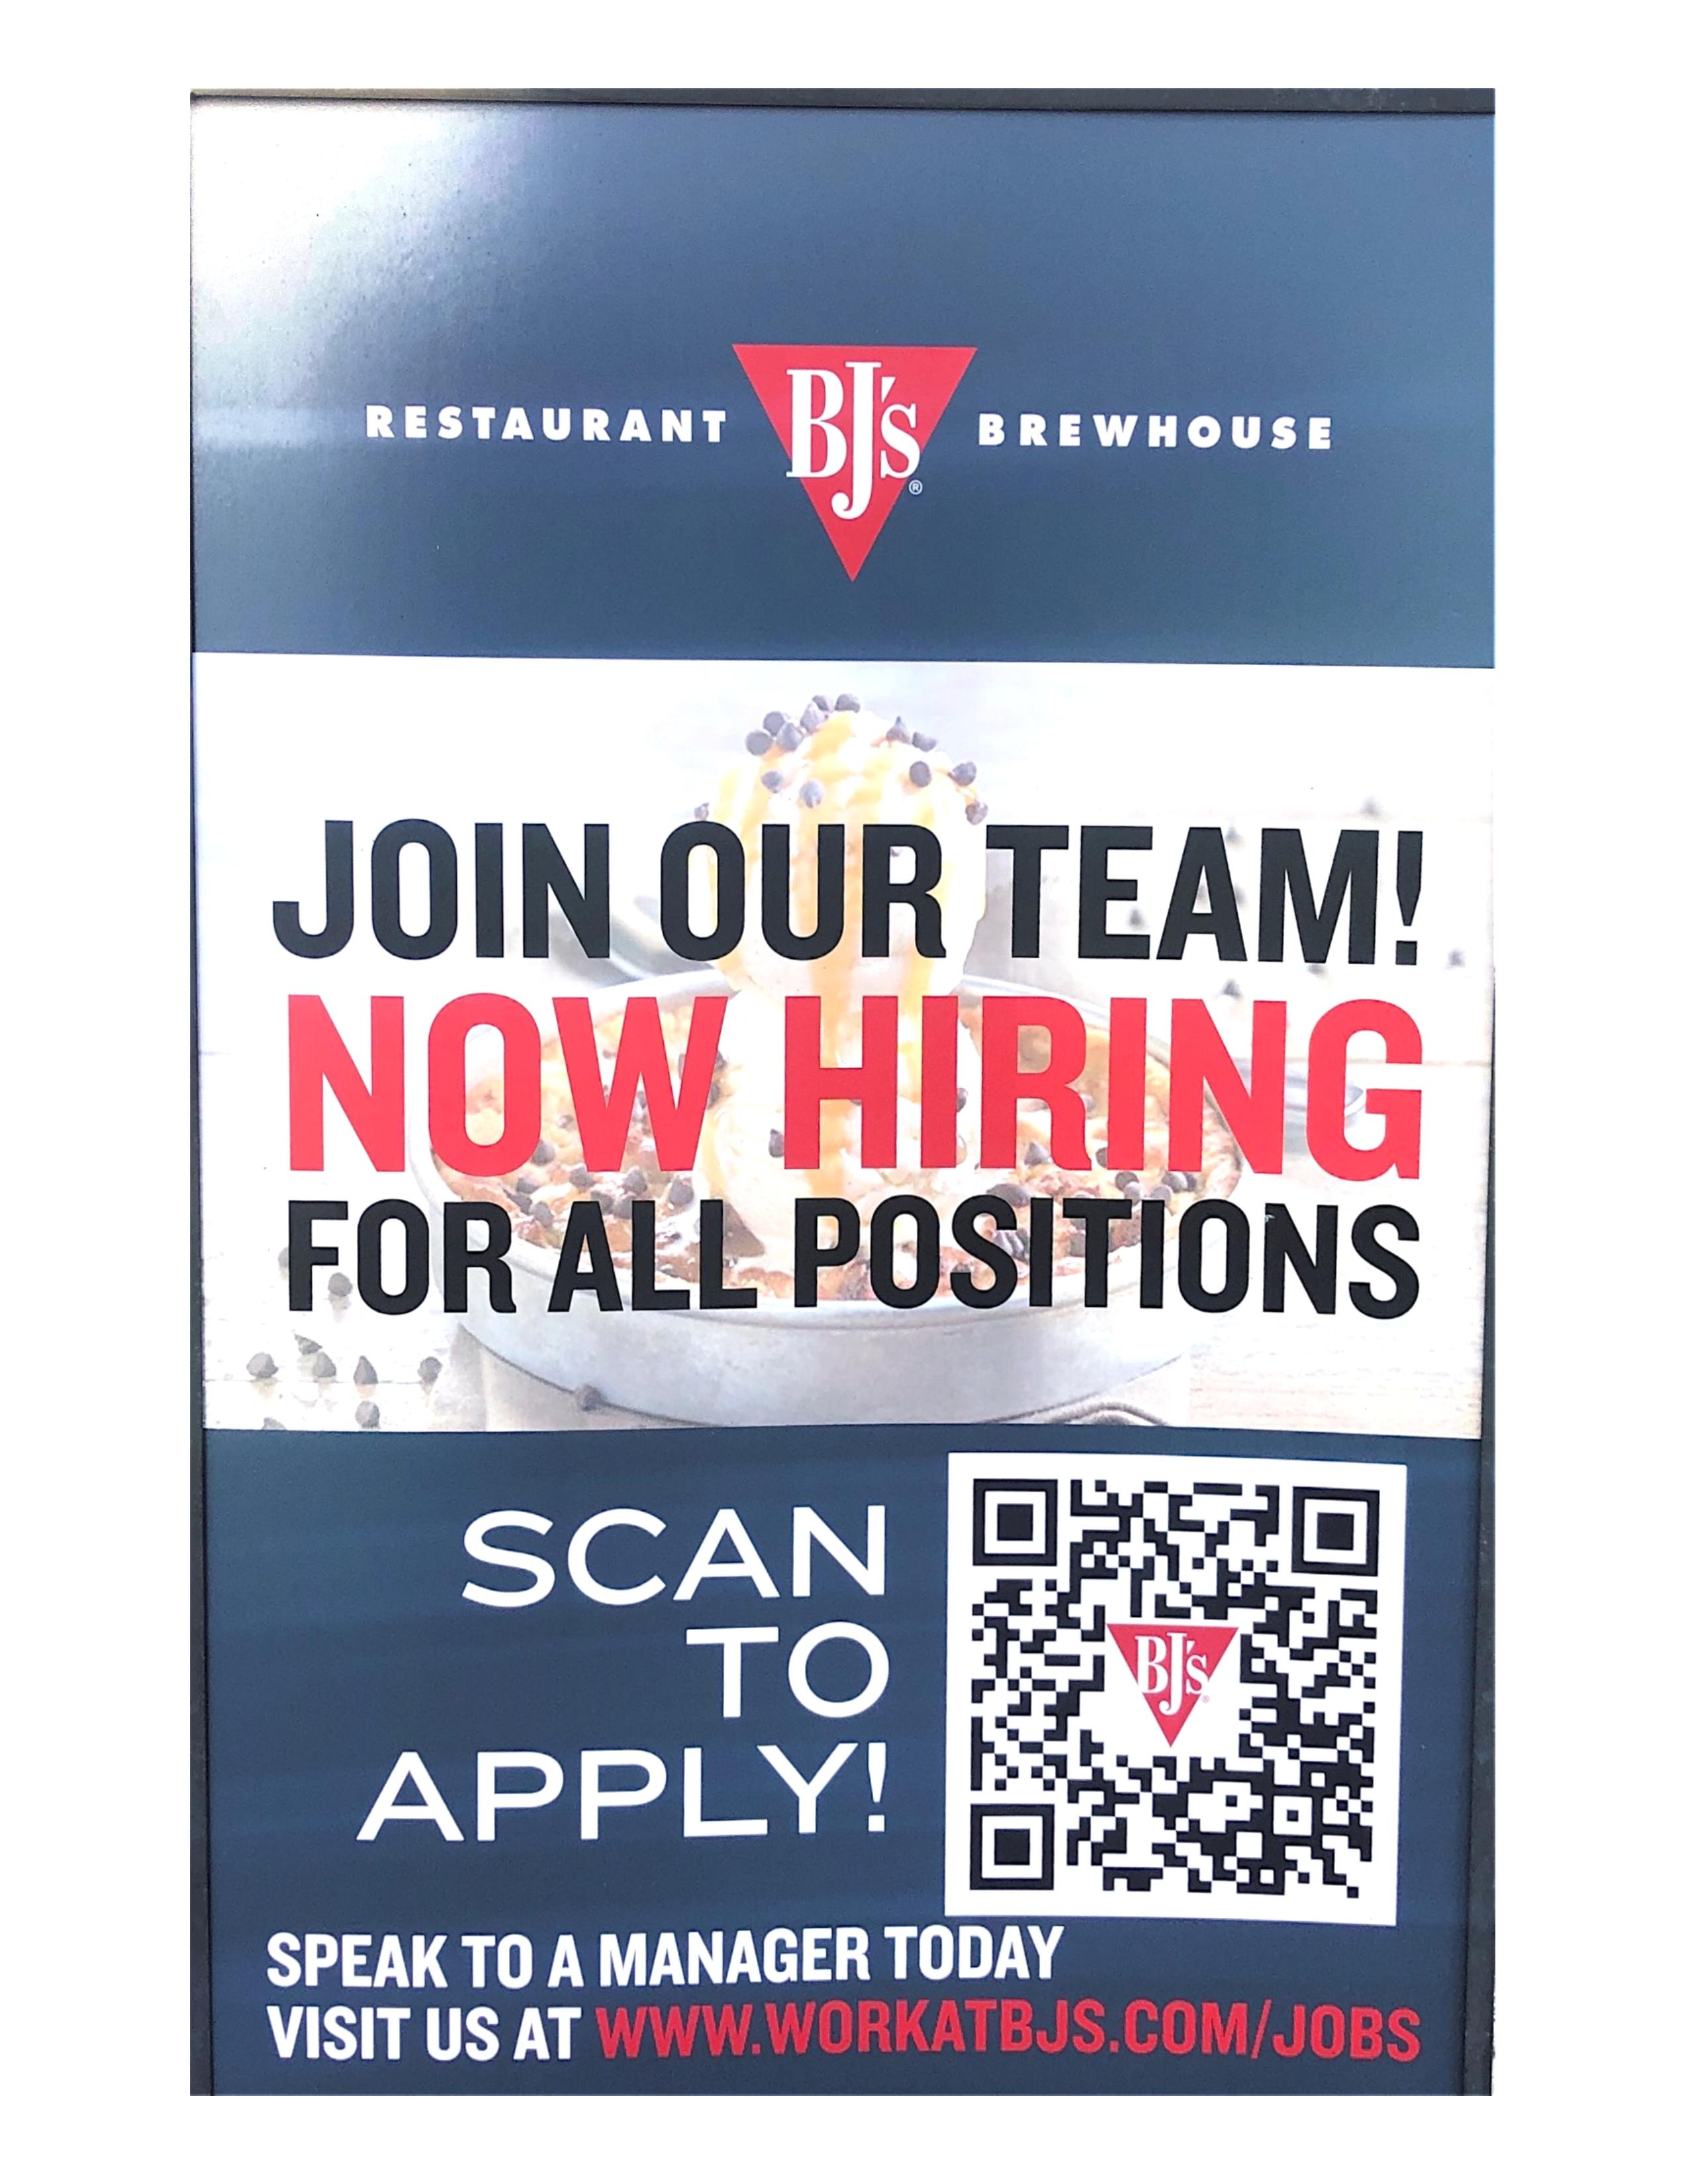 BJ's Restaurant Brew House